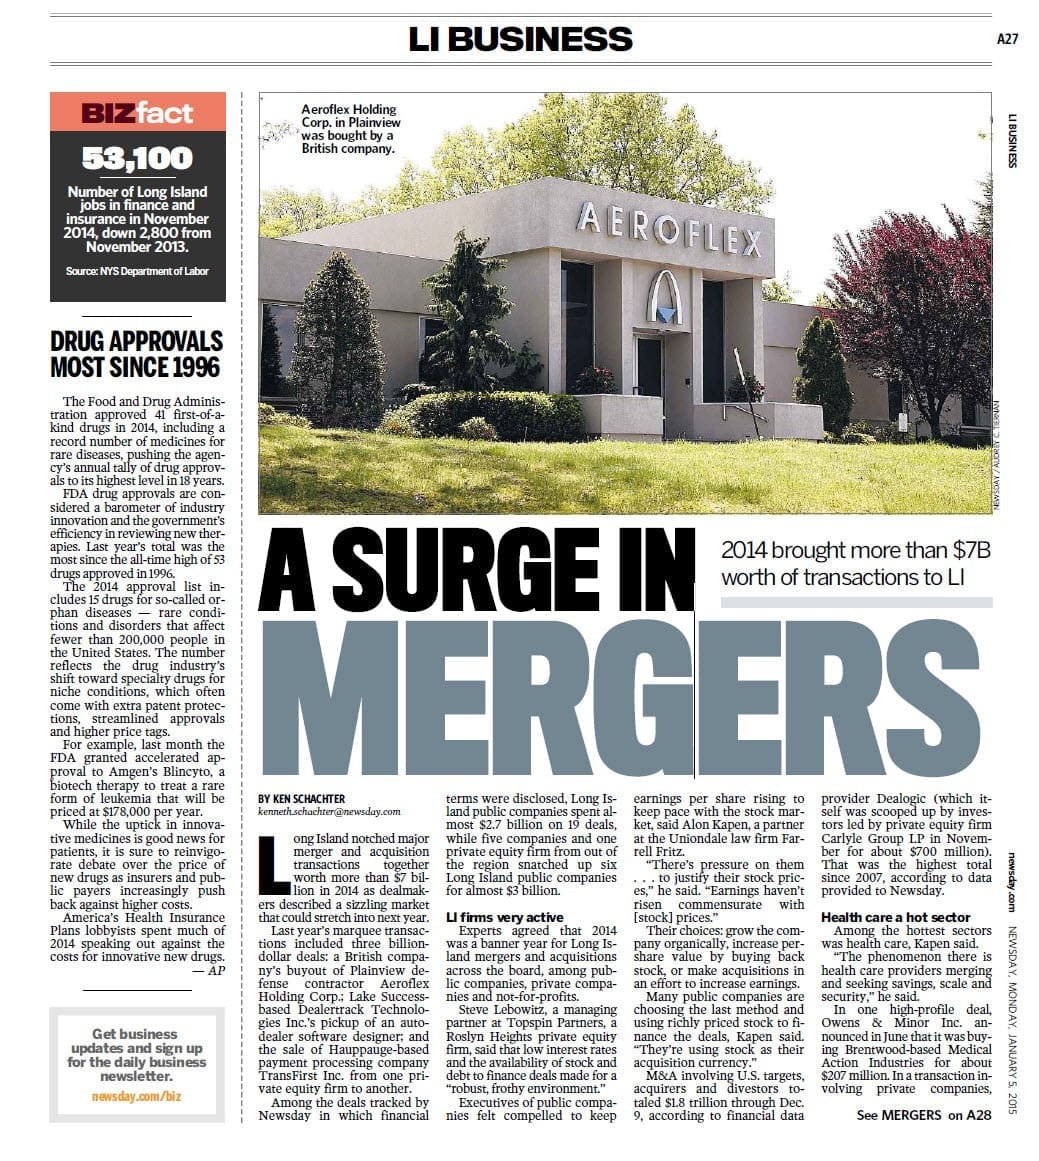 A Surge In Mergers